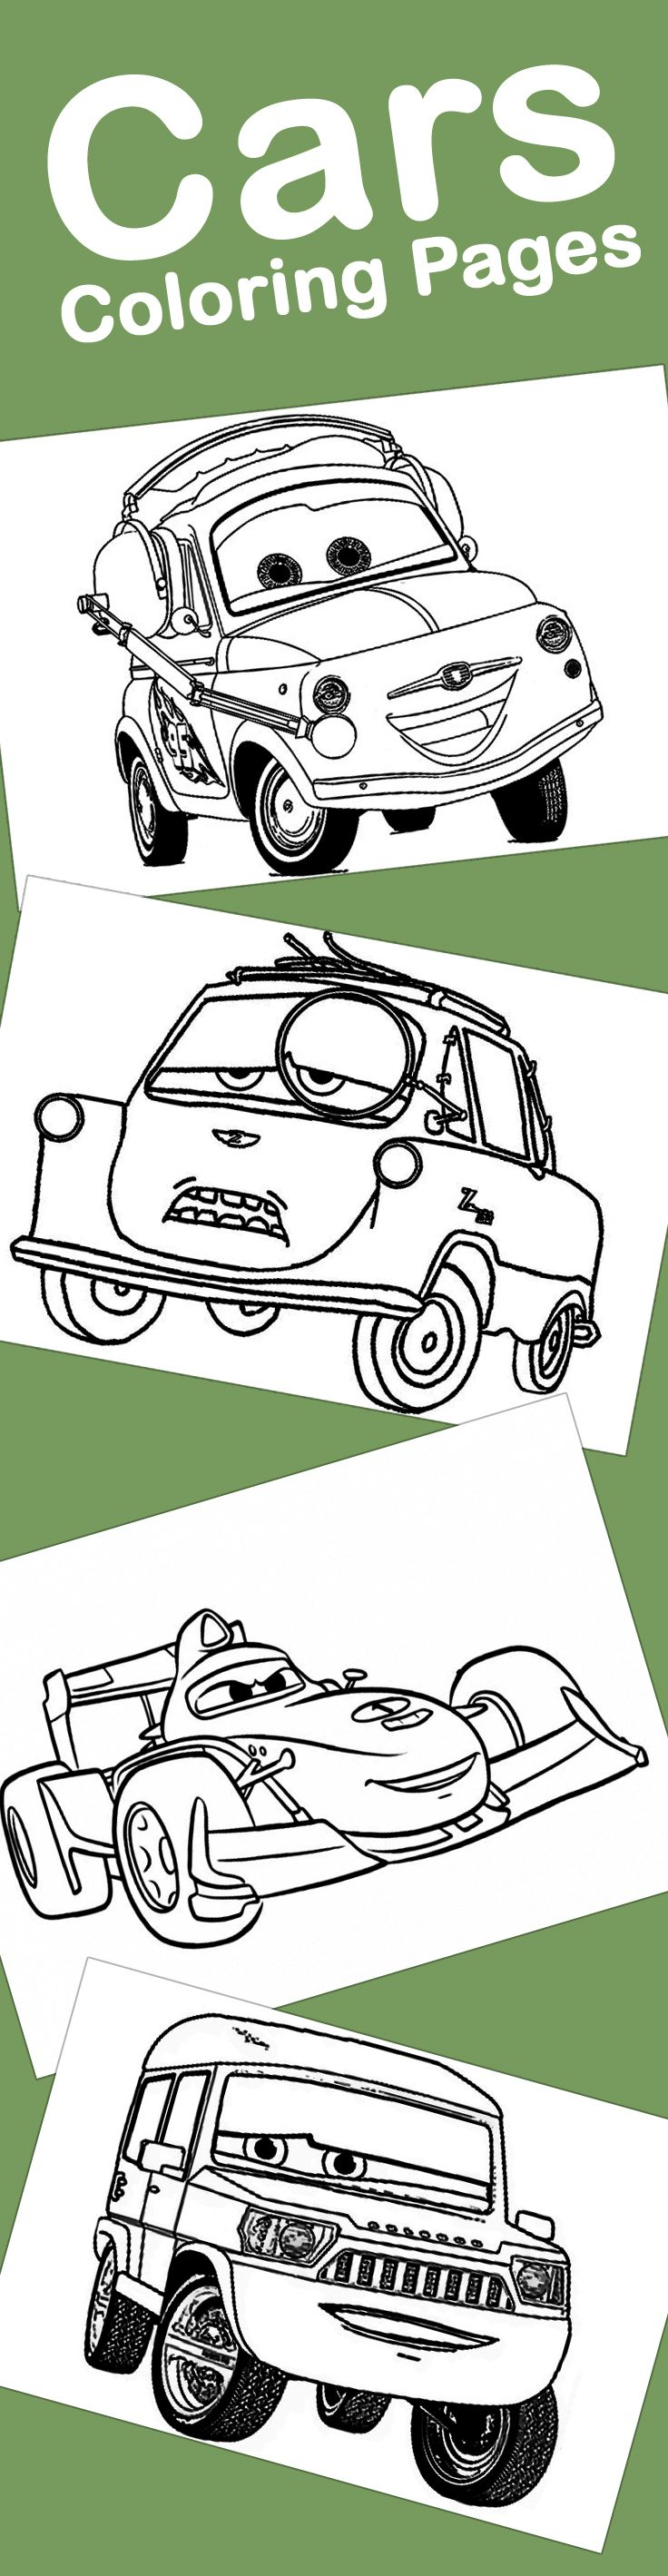 Top free printable colorful cars coloring pages online hot